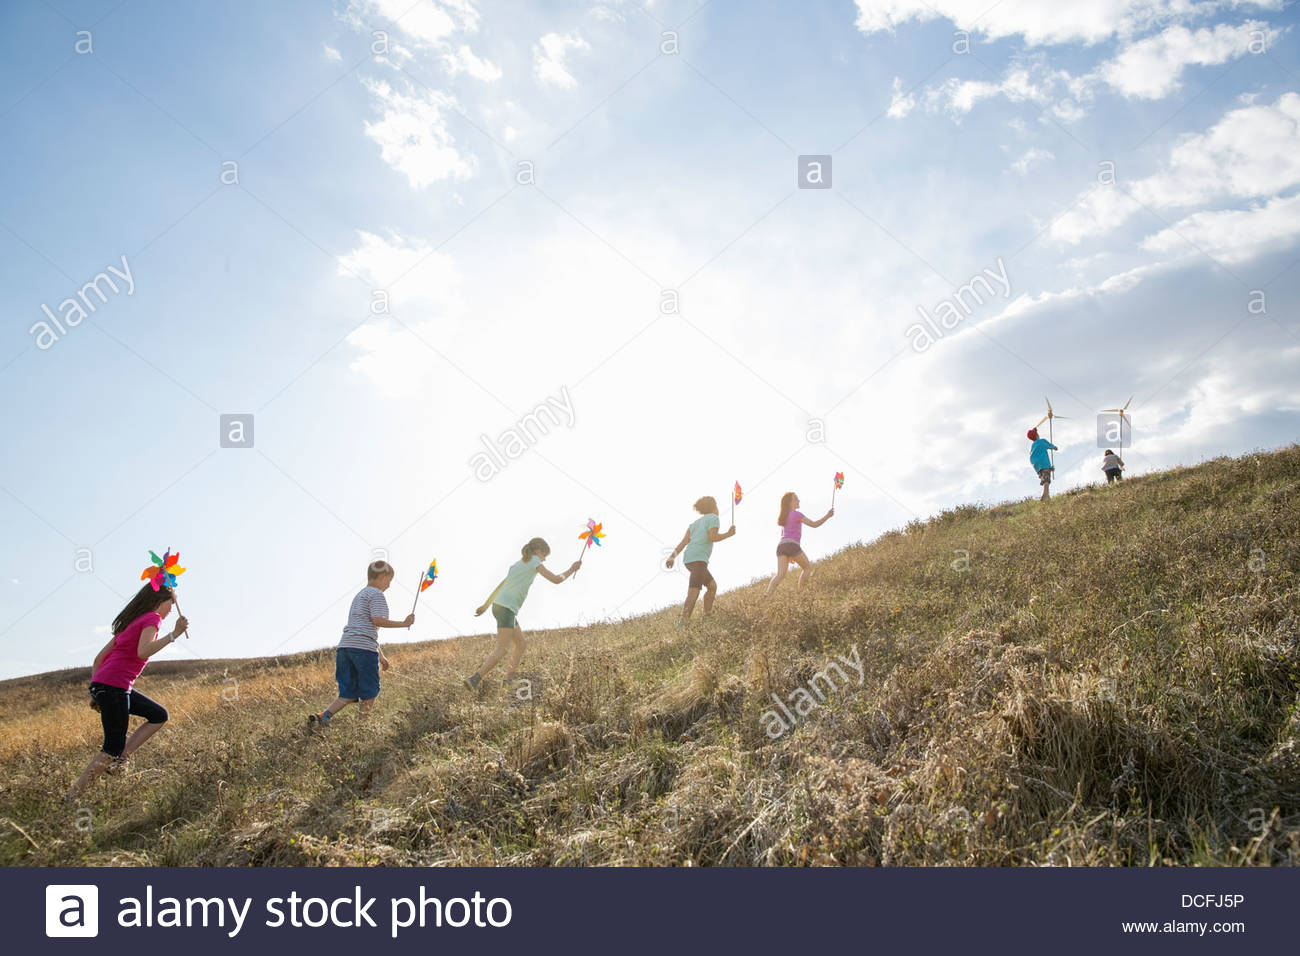 Kids walking up hill with pinwheels and wind turbine models - Stock Image